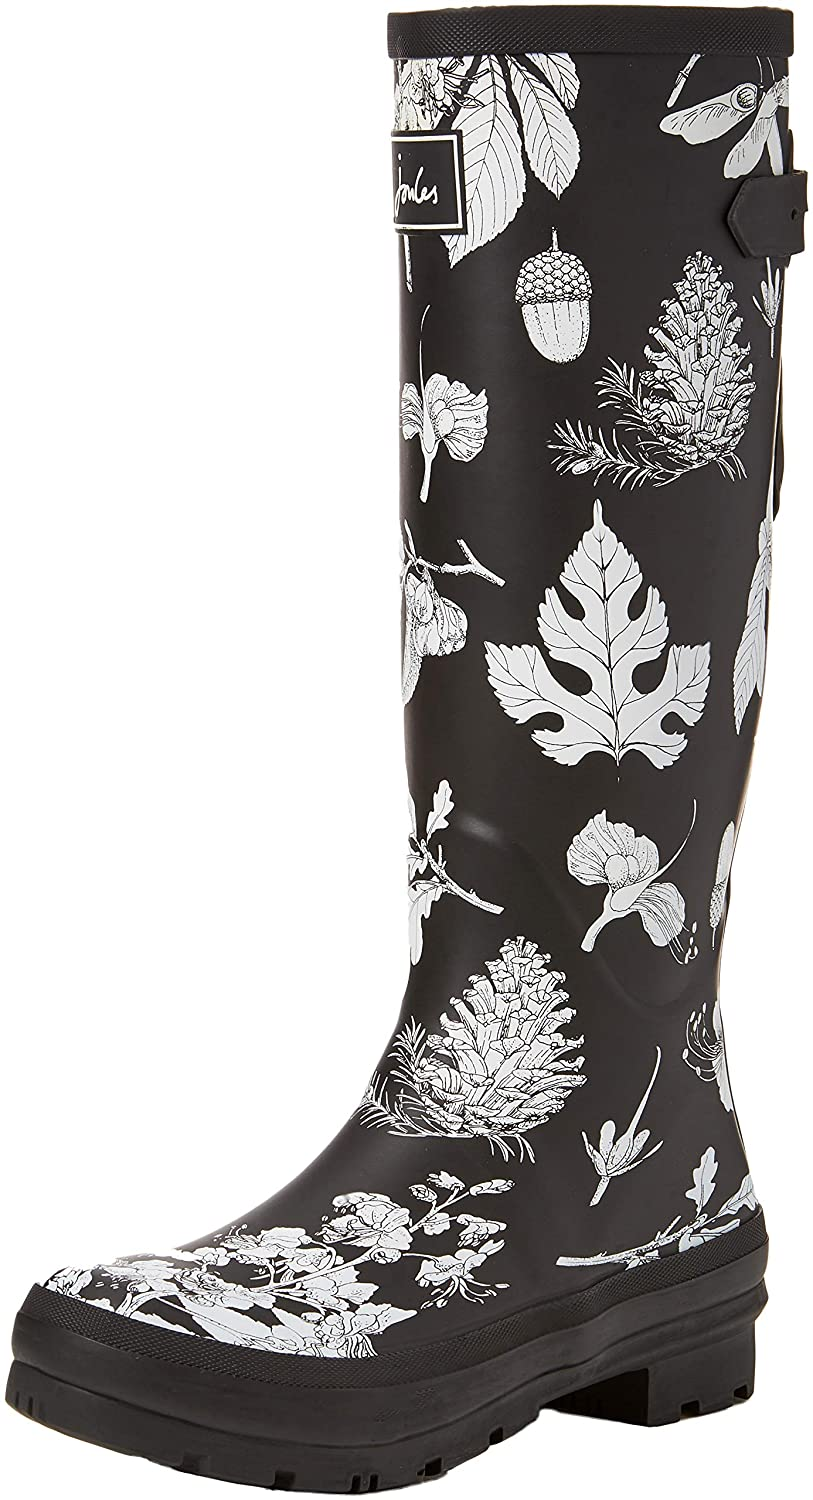 Tom Joule Damen Welly Dogs Print Gummistiefel, French Navy Dogs Welly in Leaves Schwarz (schwarz Etched Botanical Bletbot) 6df95c